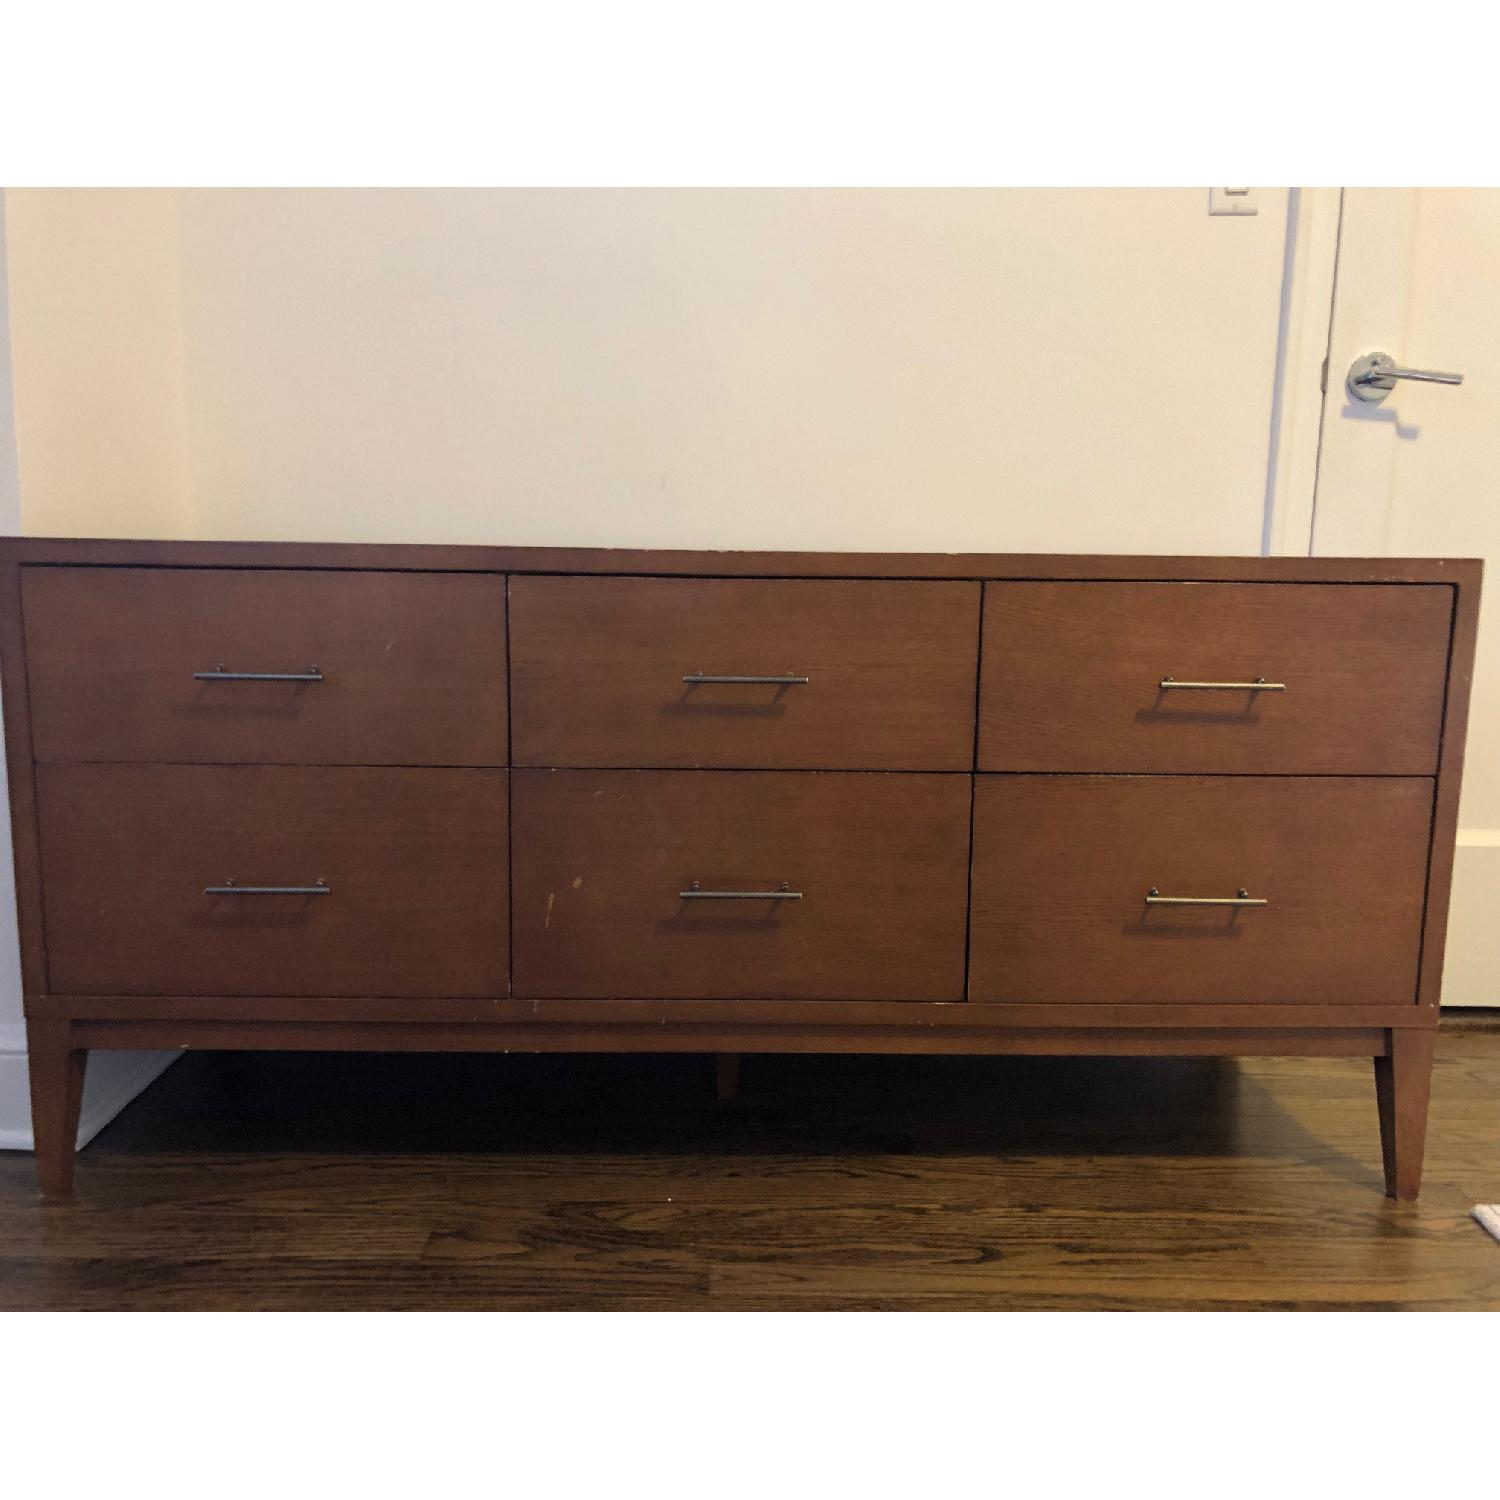 West Elm Narrow-Leg 6-Drawer Dresser in Acorn - image-2